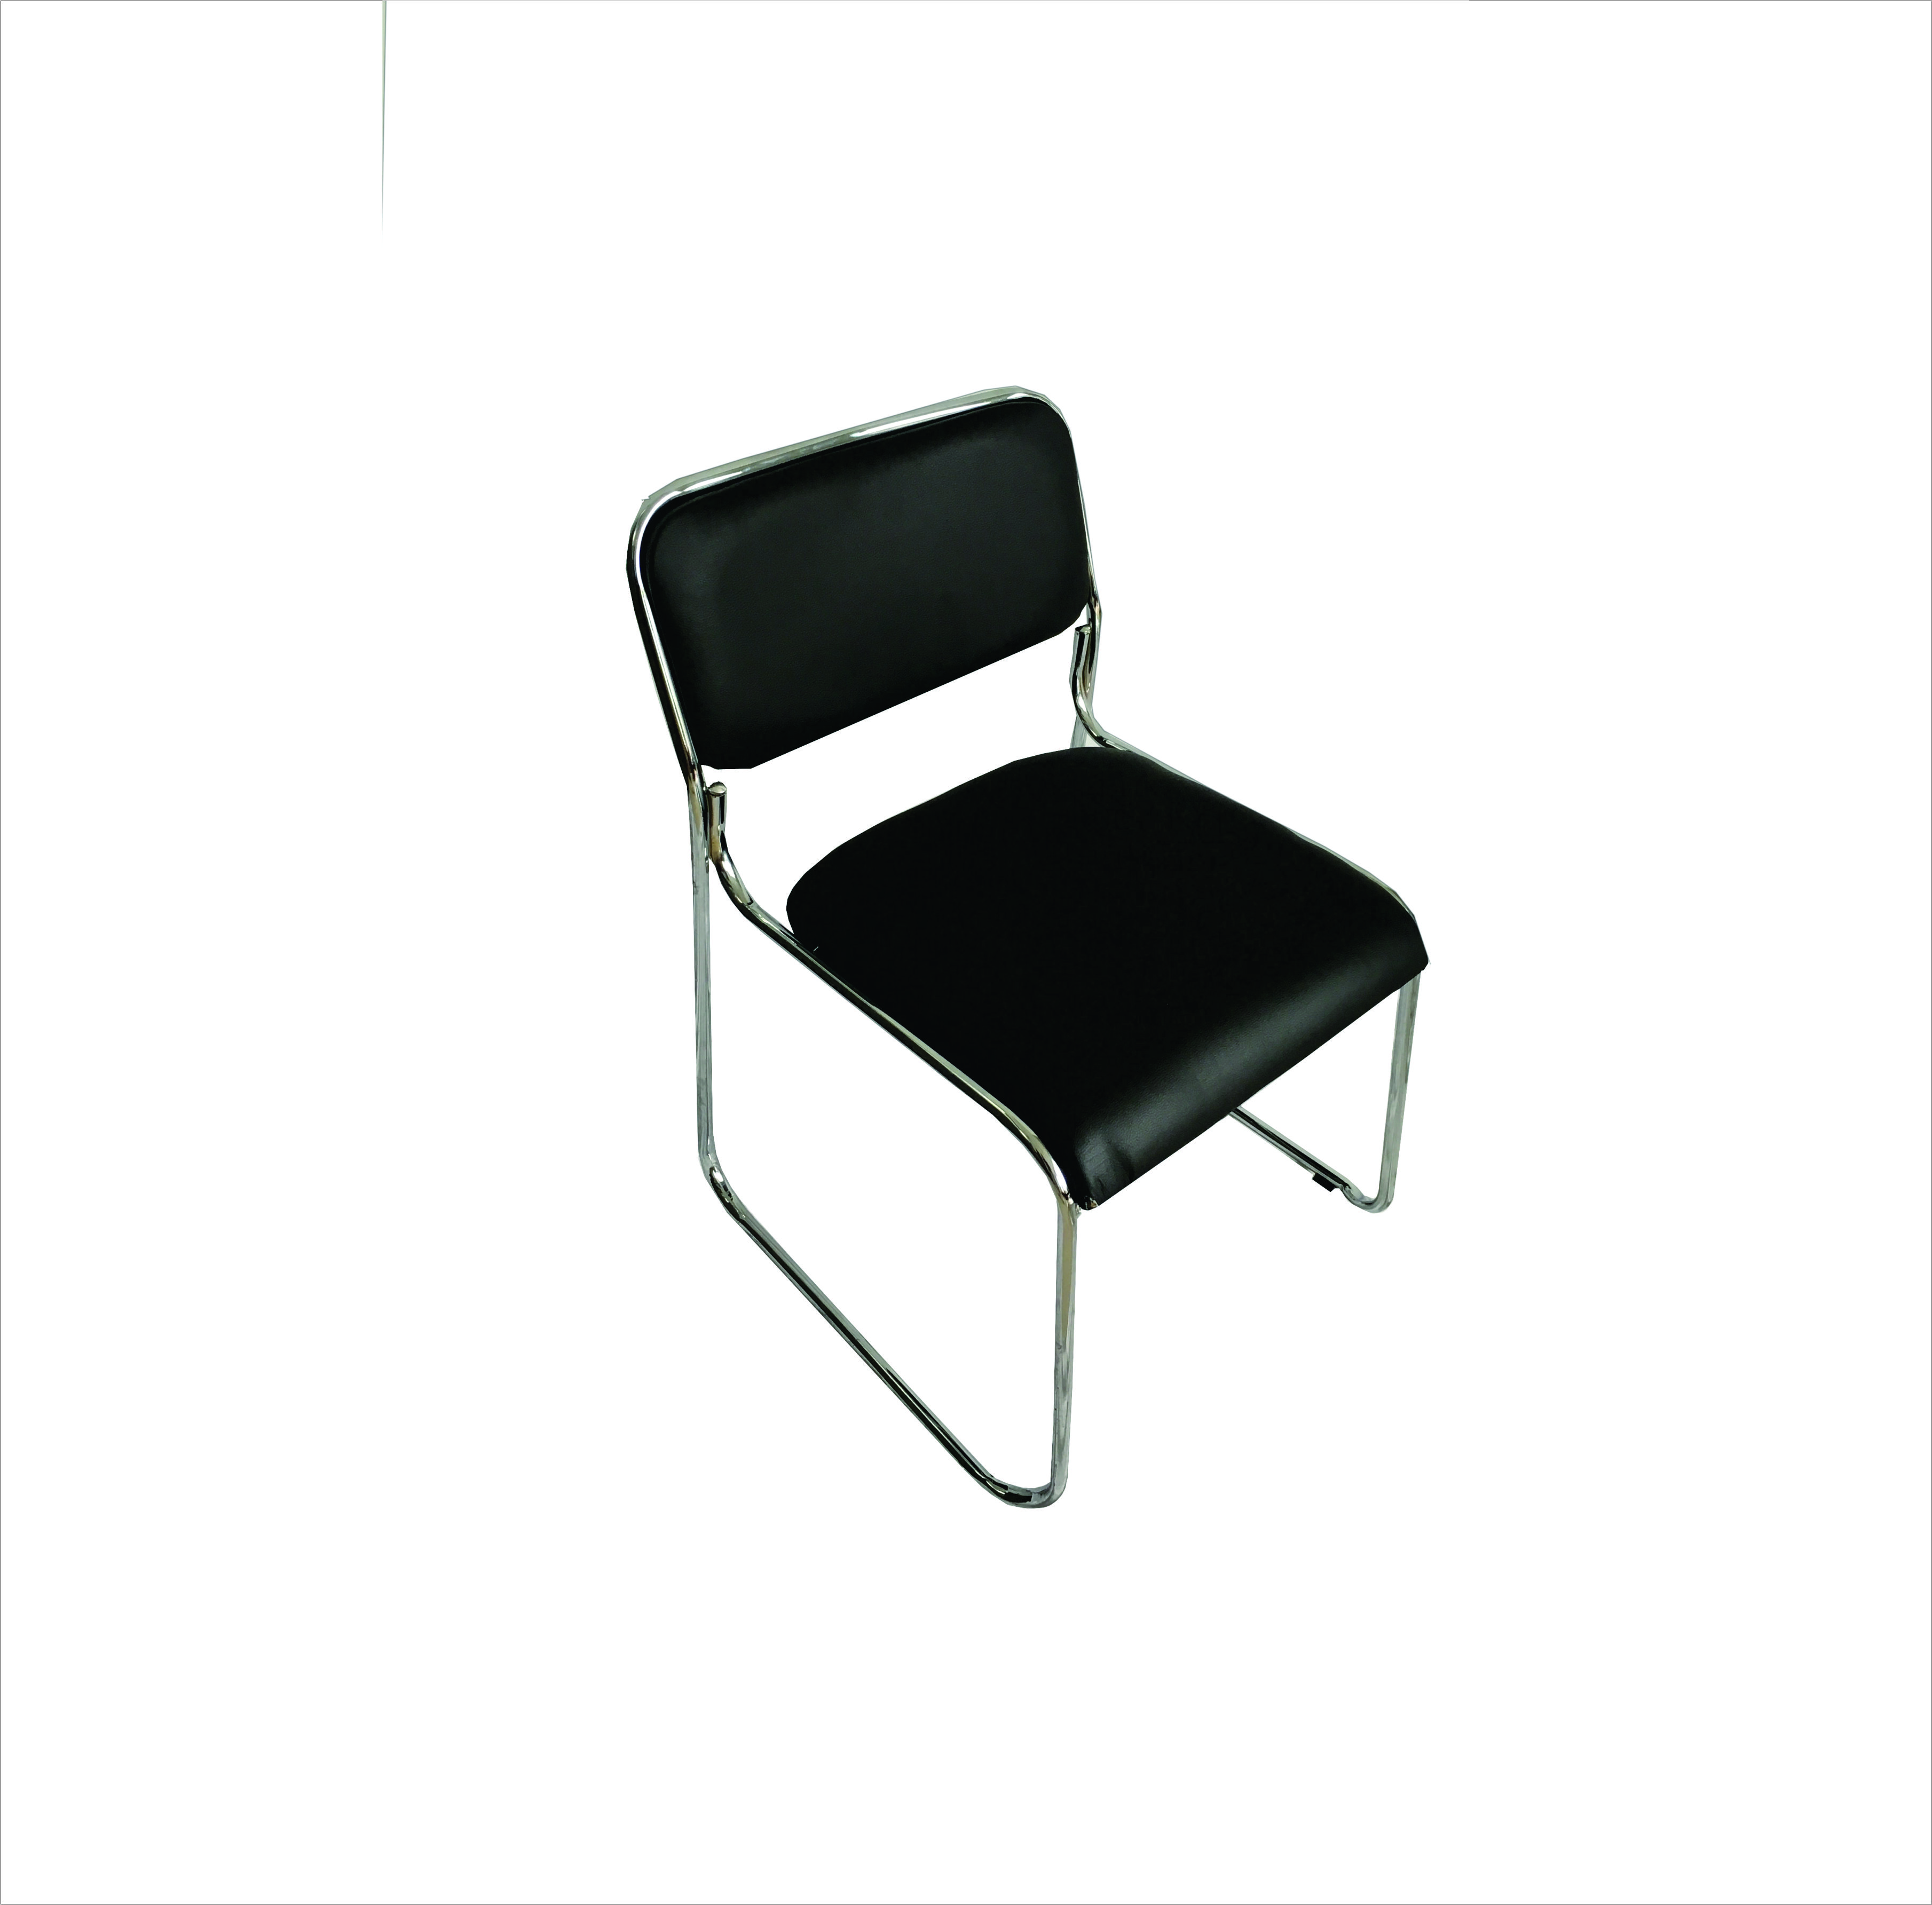 Office chairs in sri lanka - Office Furniture For Sale In Srilanka Chair Lk In Lowest Price Dining Chairs